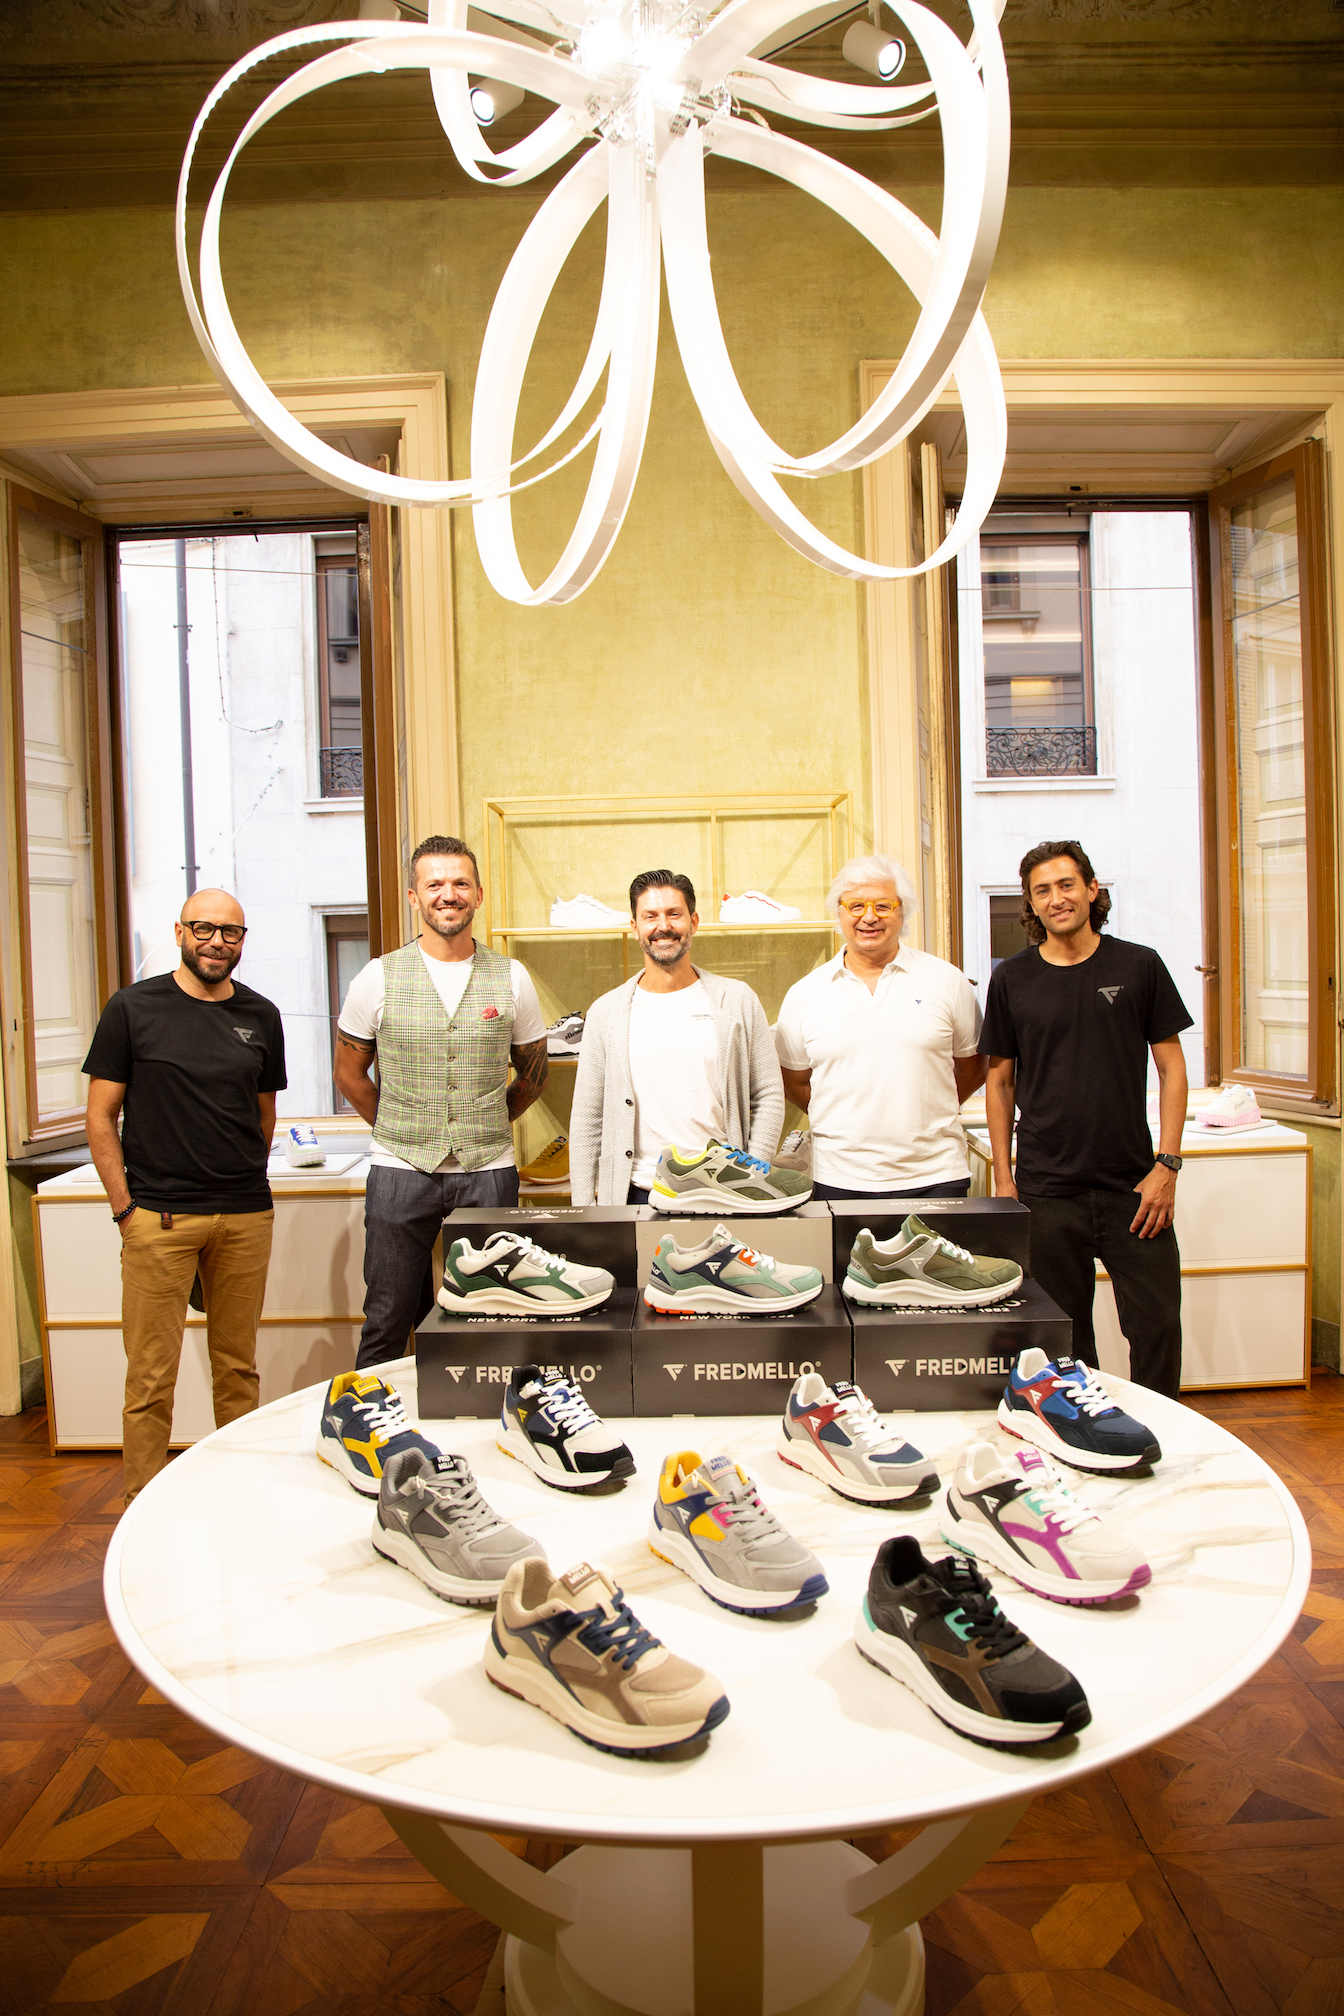 Why Fred Mello starts collaborating with Nice Footwear